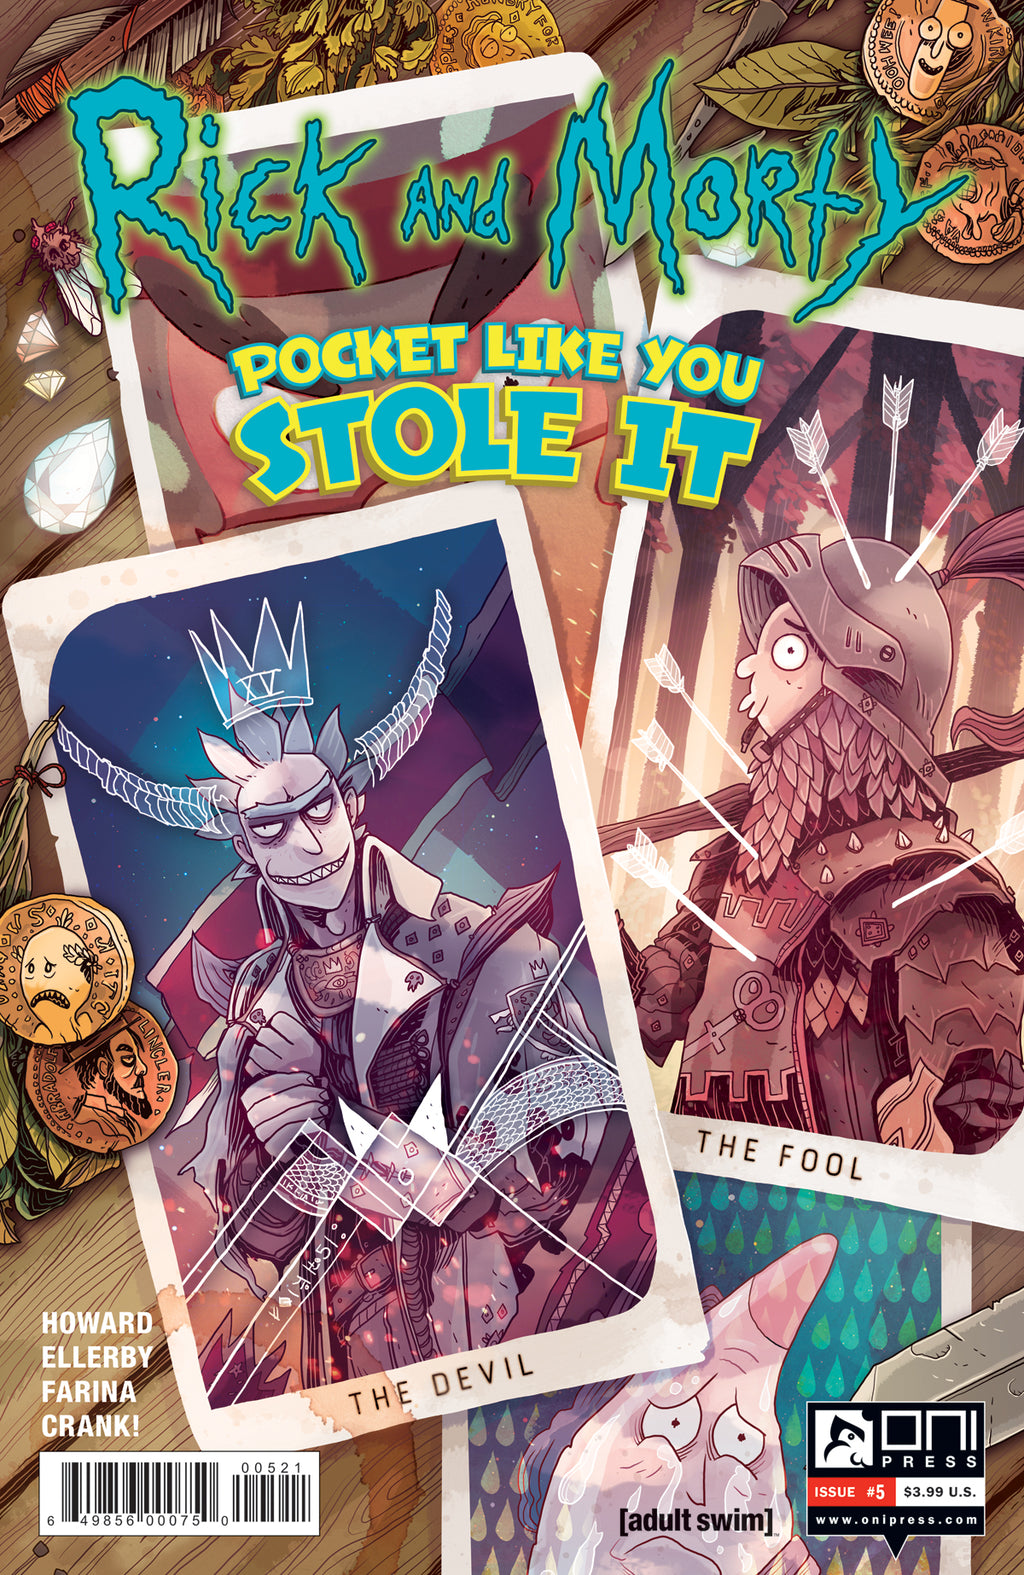 Rick and Morty: Pocket Like You Stole It #5 - Cover B